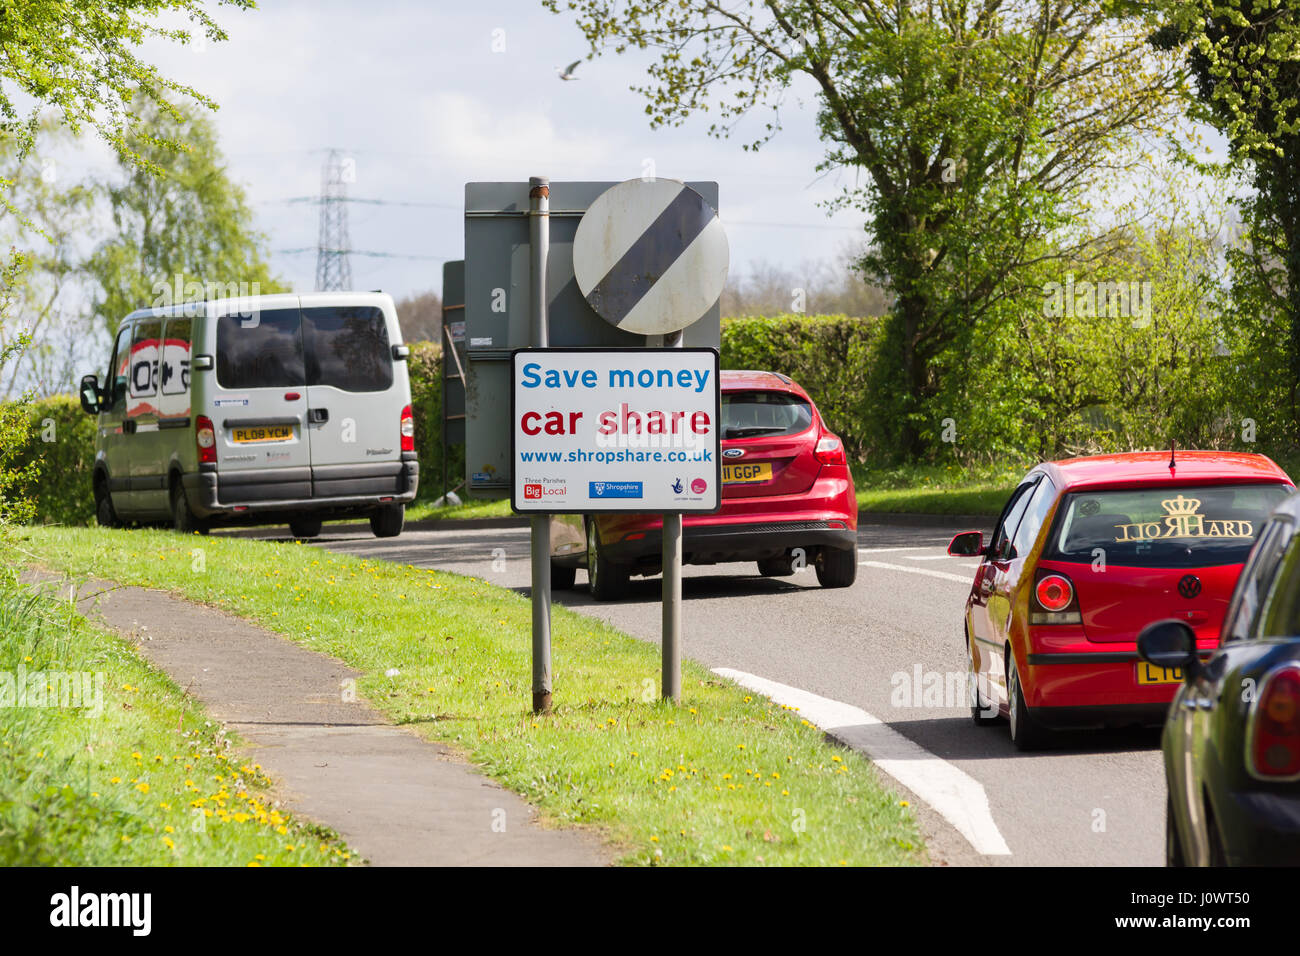 Roadside sign erected by Shropshare Carshare Shropshire and Telford advising drivers of car sharing or pooling to Stock Photo